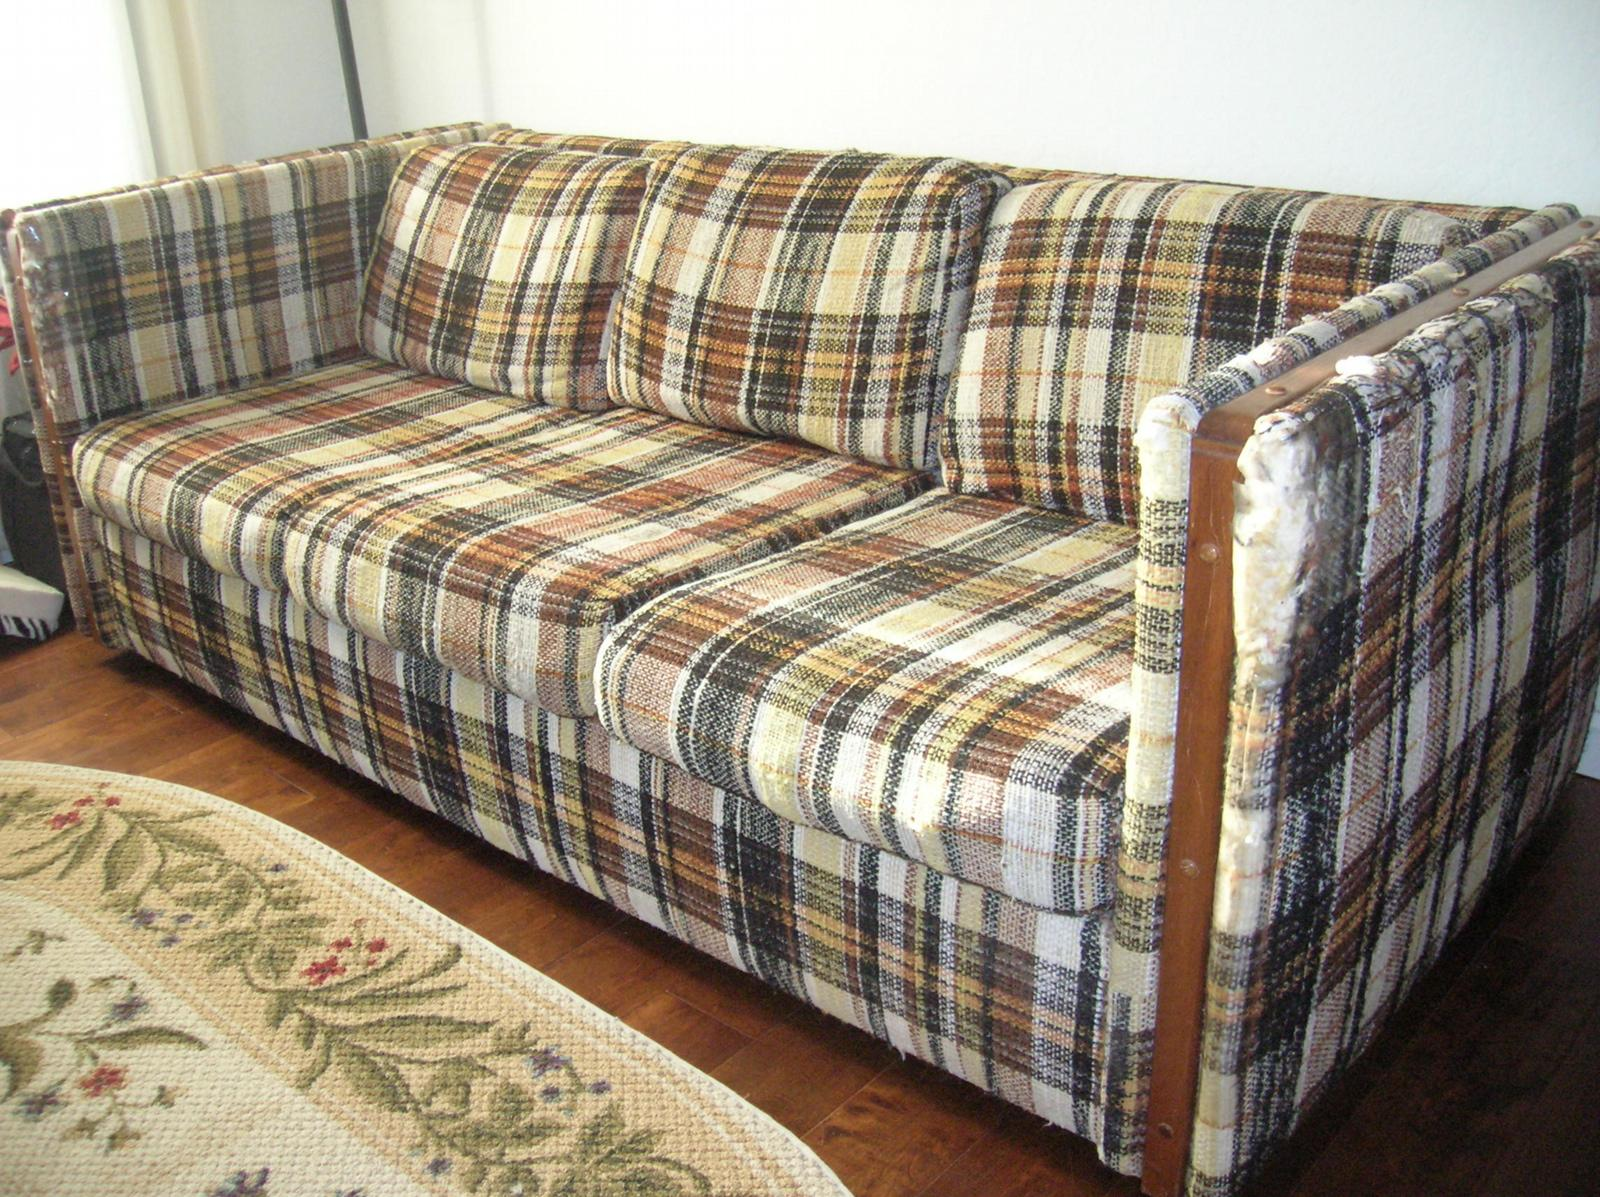 Sofa Groß Couch Conundrum How To Ditch Your Old Sofa The Mercury News